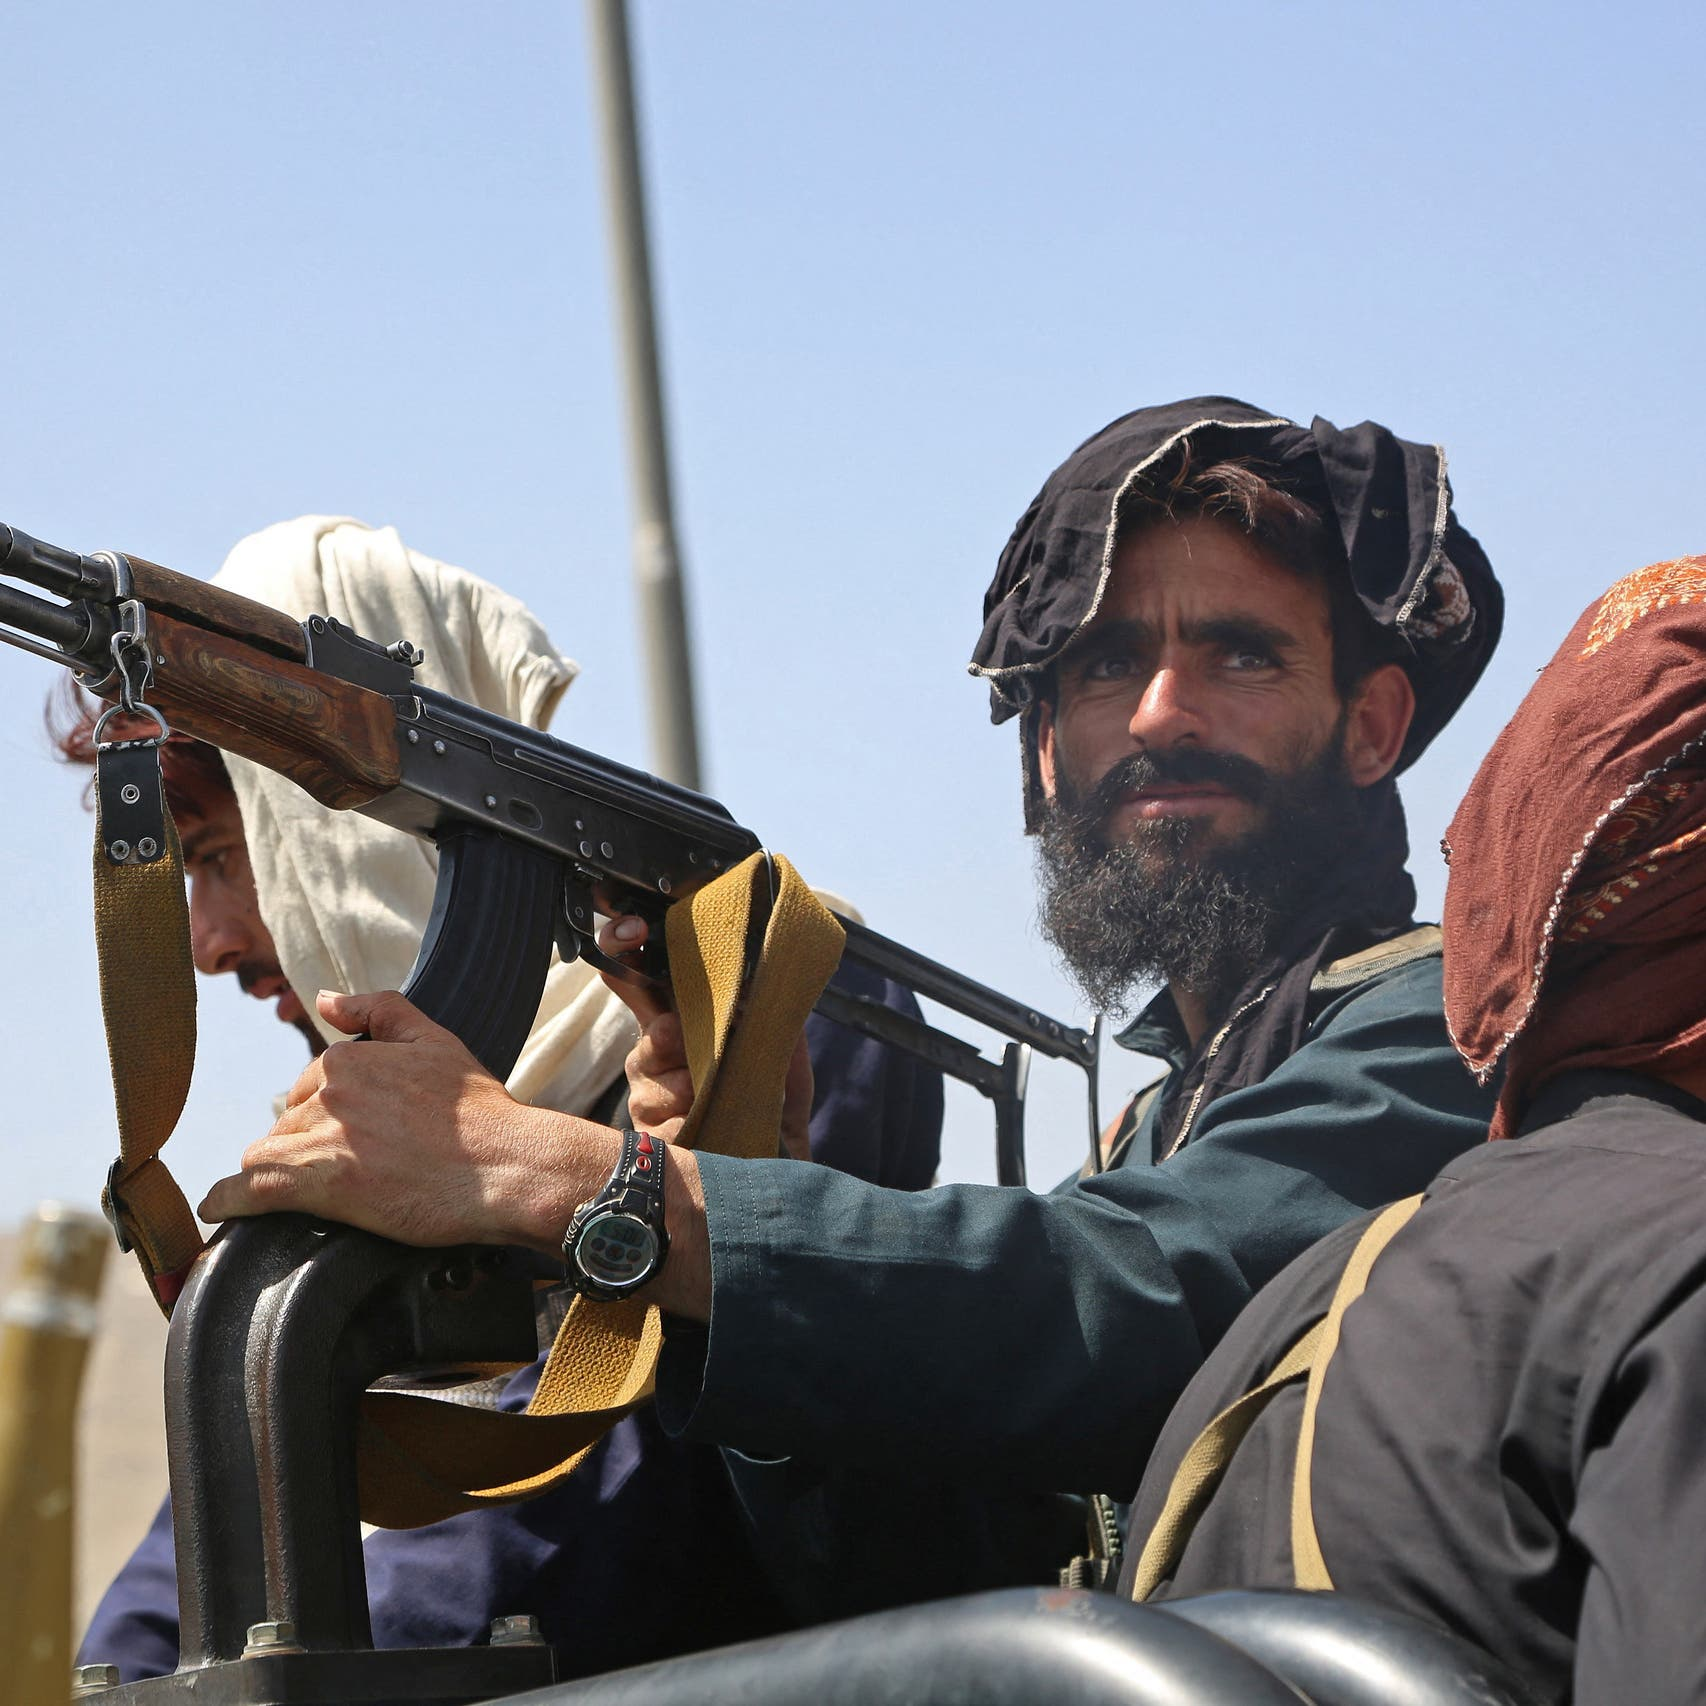 Explainer: The Taliban have taken over Afghanistan. What's next?